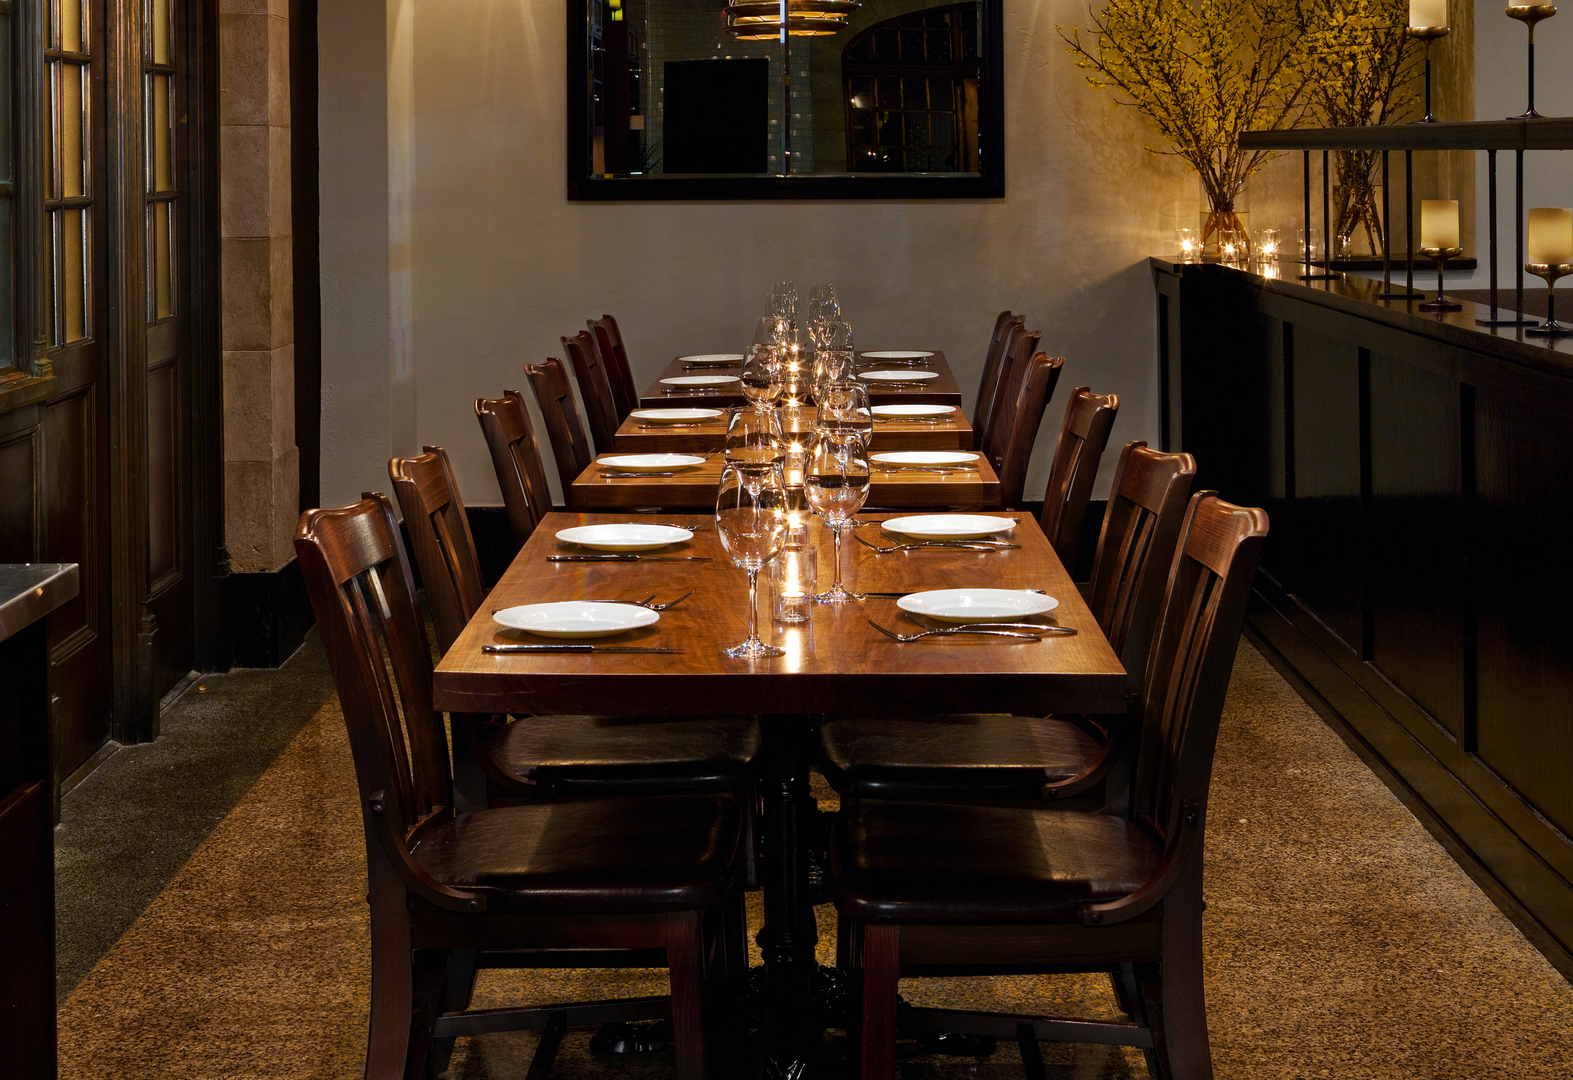 Dine-In & Takeout Menu | Modern Restaurant And Lounge - New York